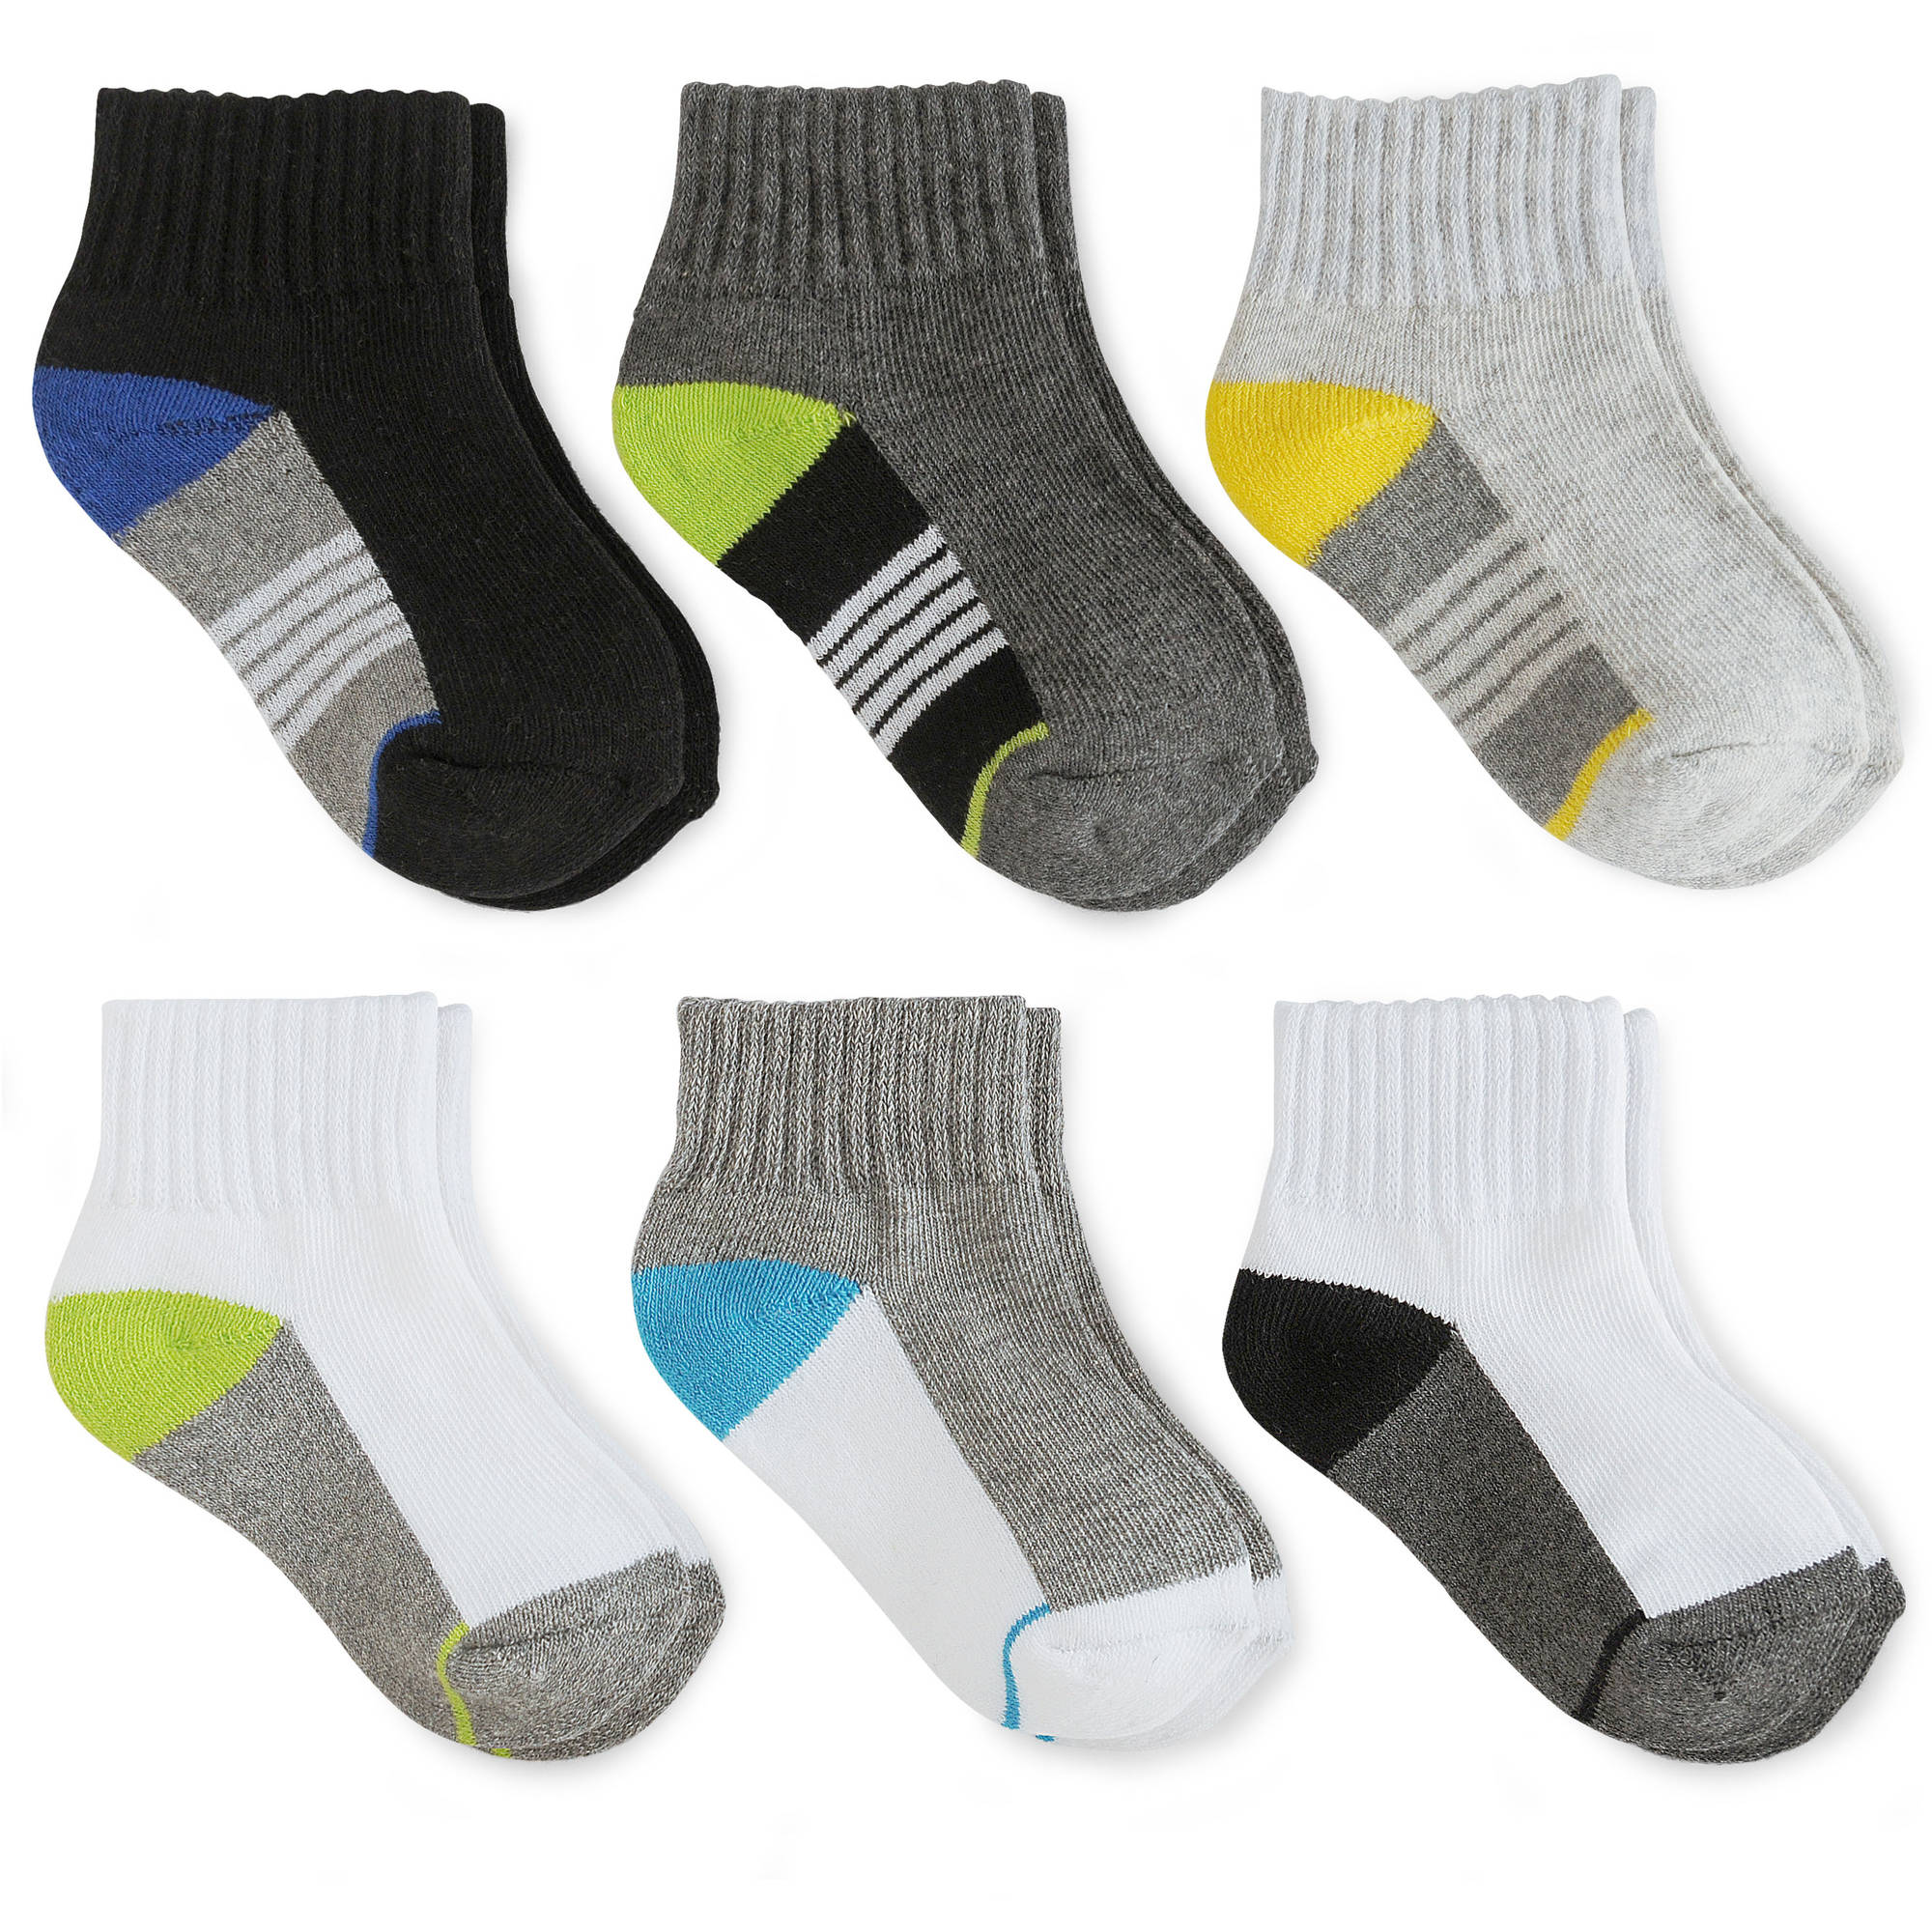 Garanimals Baby Toddler Boy Ankle Socks, 6-Pack